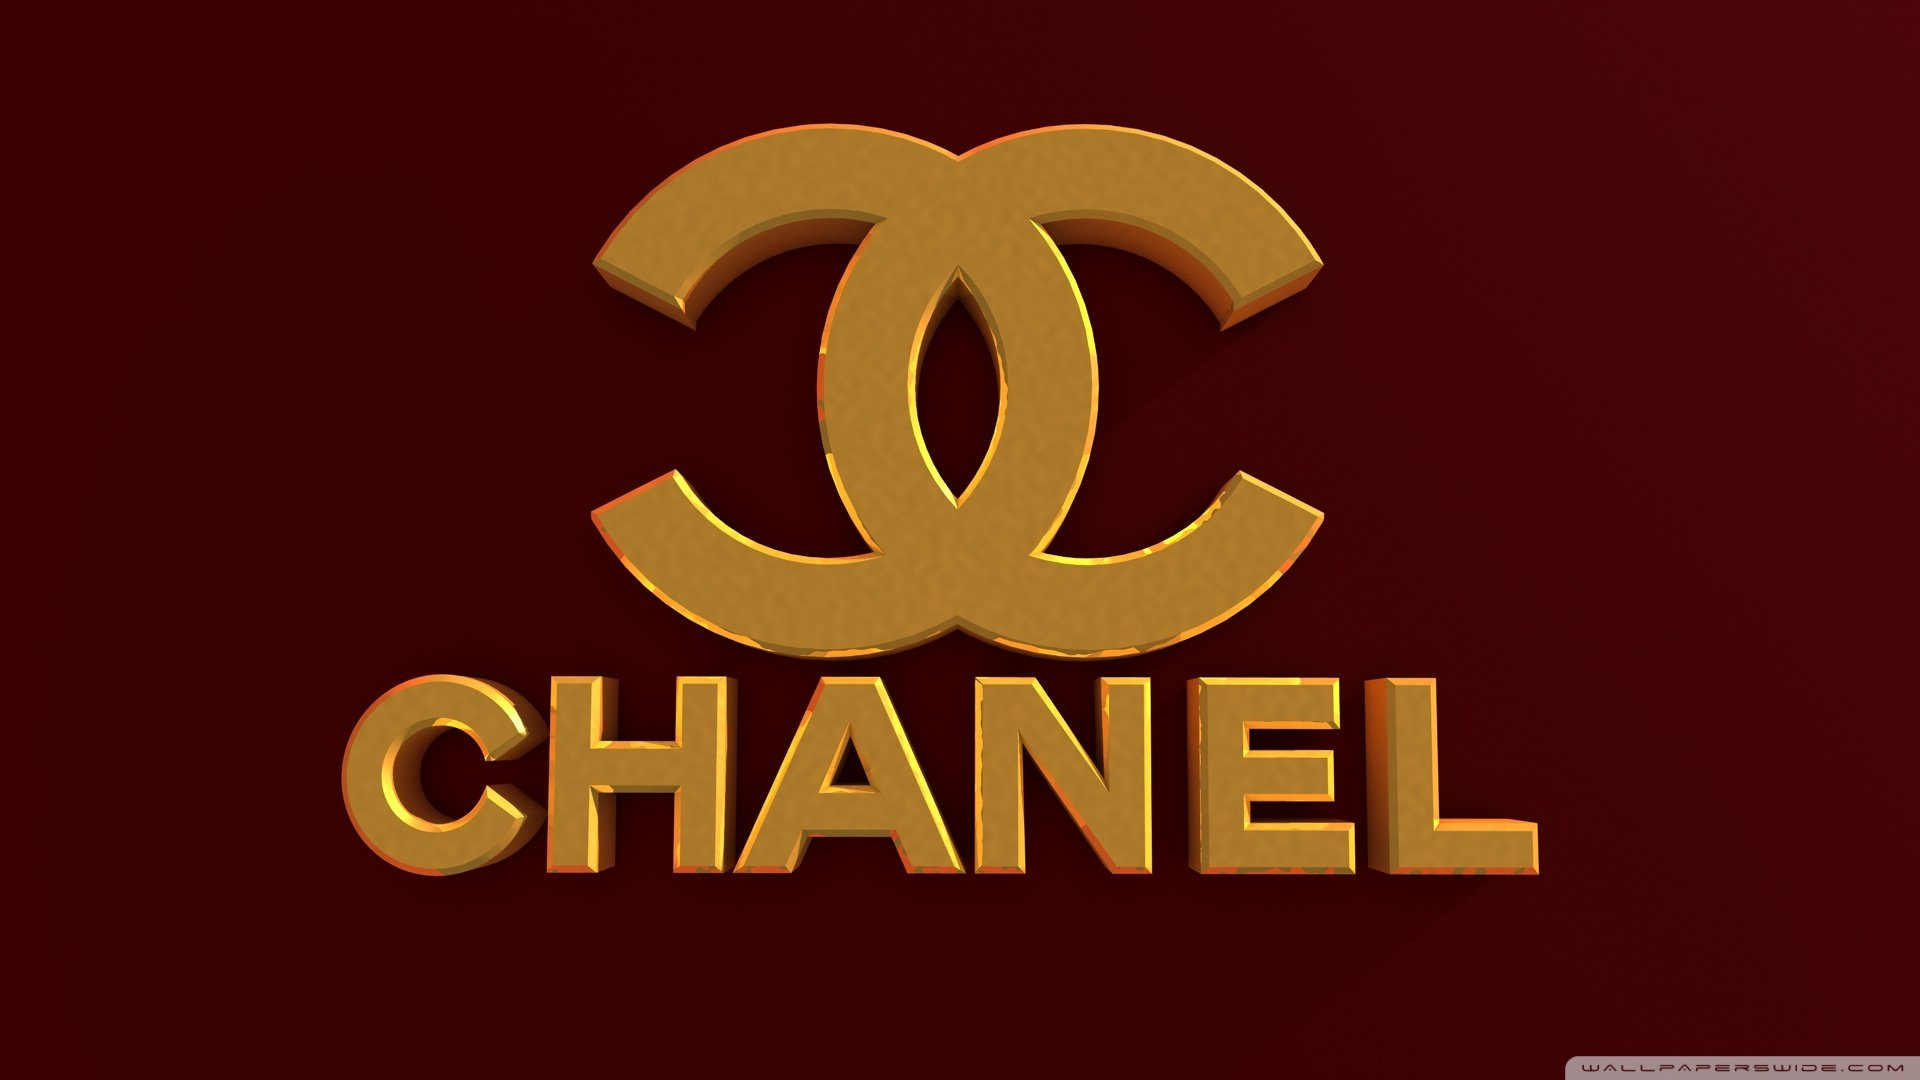 Top HD Chanel Logo Wallpaper Graphics HD 20808 KB 1920x1080